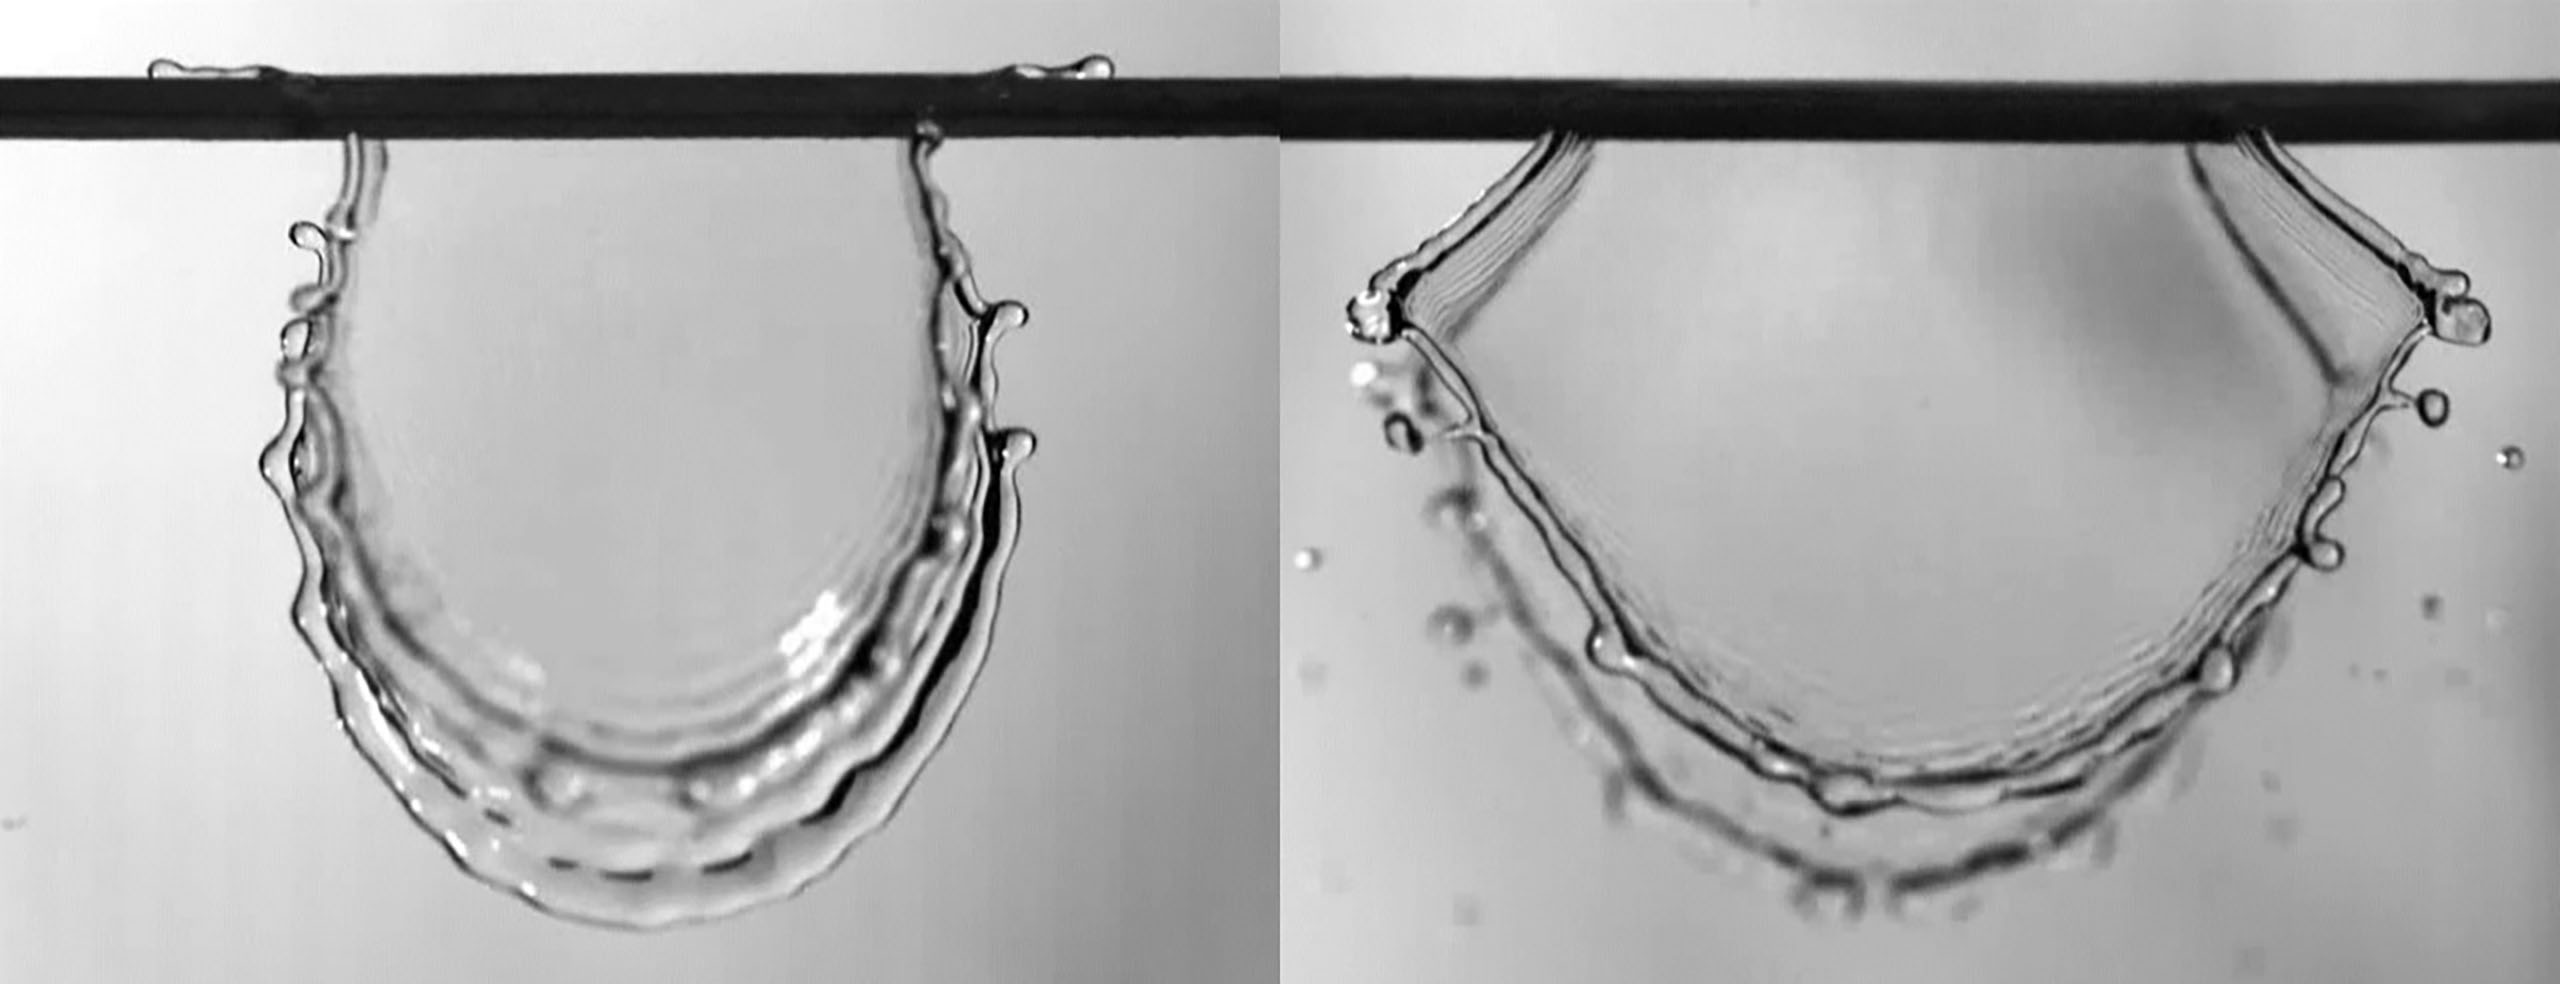 Lobes from 4 meters/second impacting rounded fibers (left) and wedged fibers (right). CREDIT: Lebanoff and Dickerson, UCF